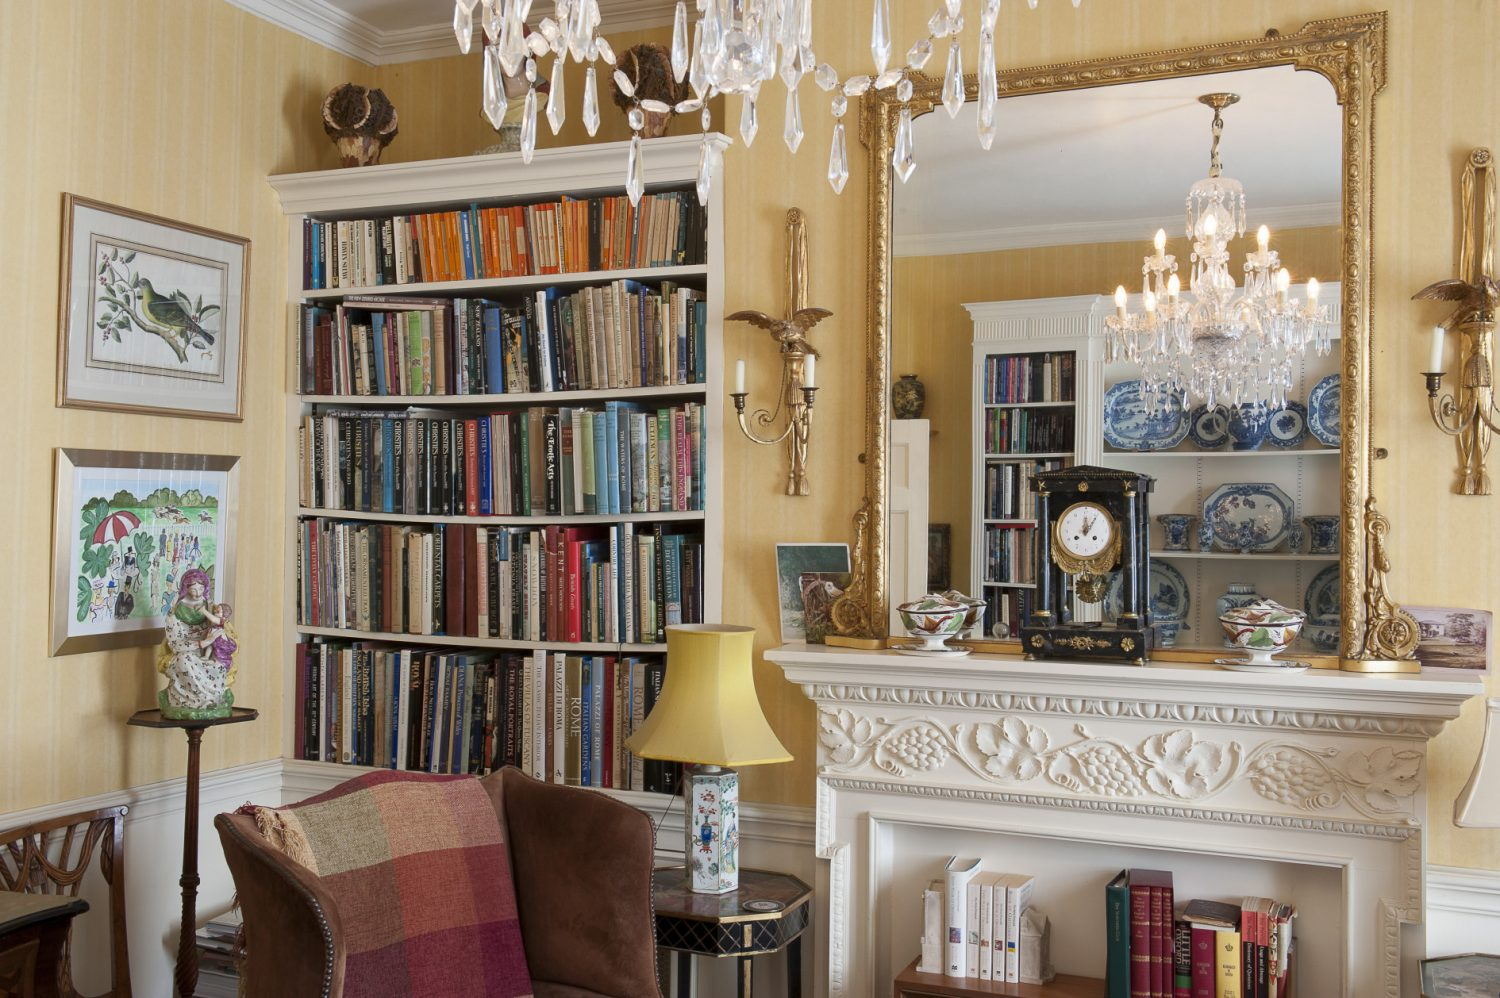 The morning room on the first floor is filled with books and periodicals for guests to browse